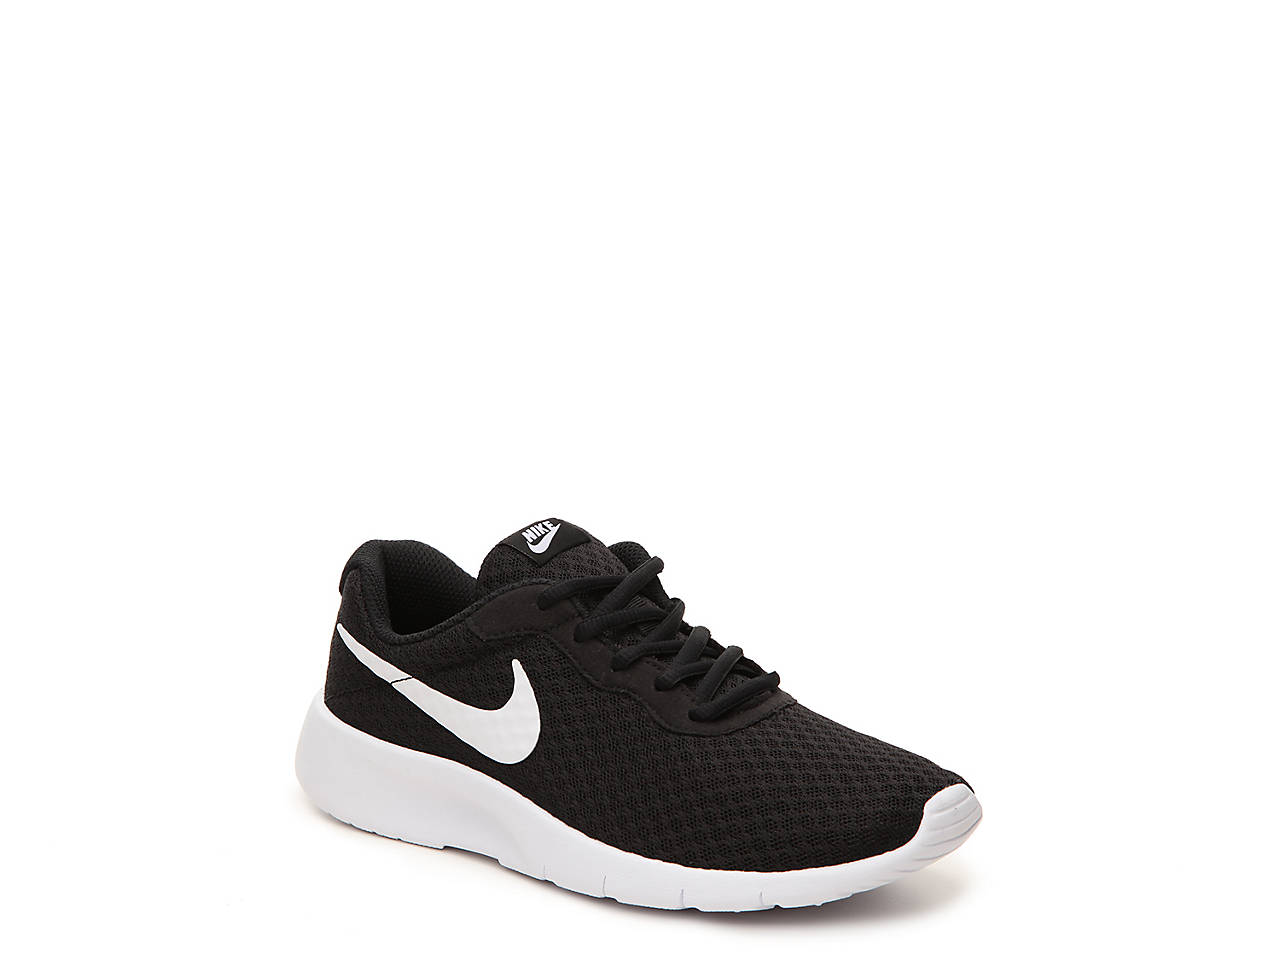 Nike Tanjun Youth Sneaker Kids Shoes | DSW